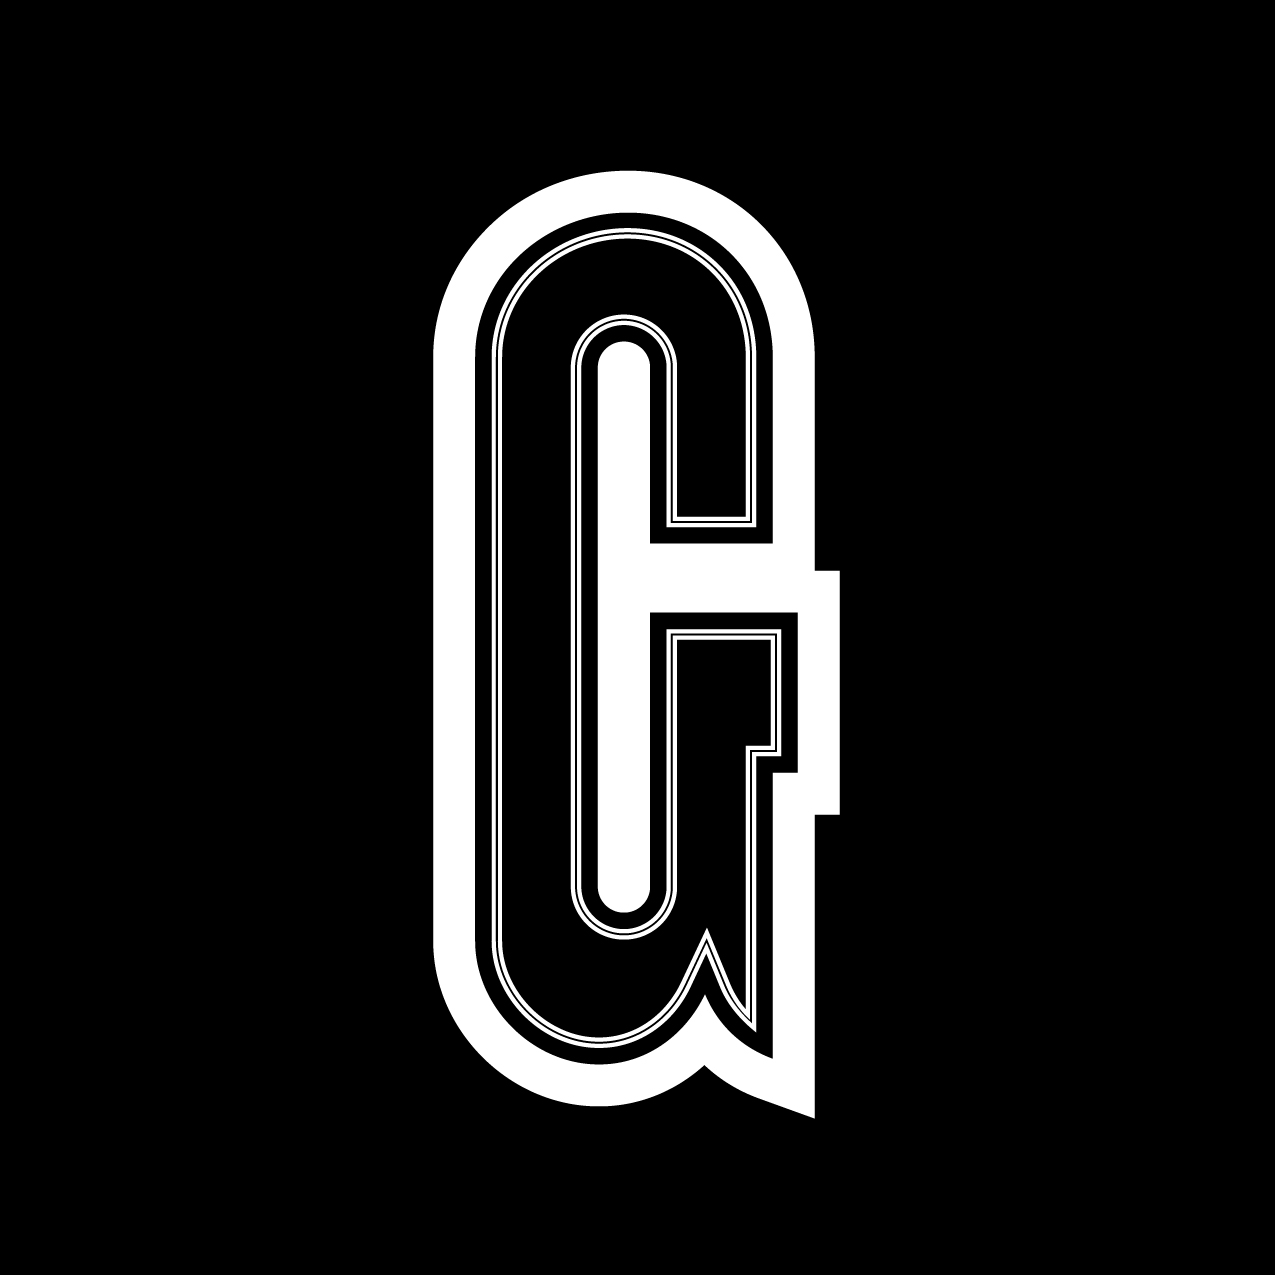 Letter G1 design by Furia